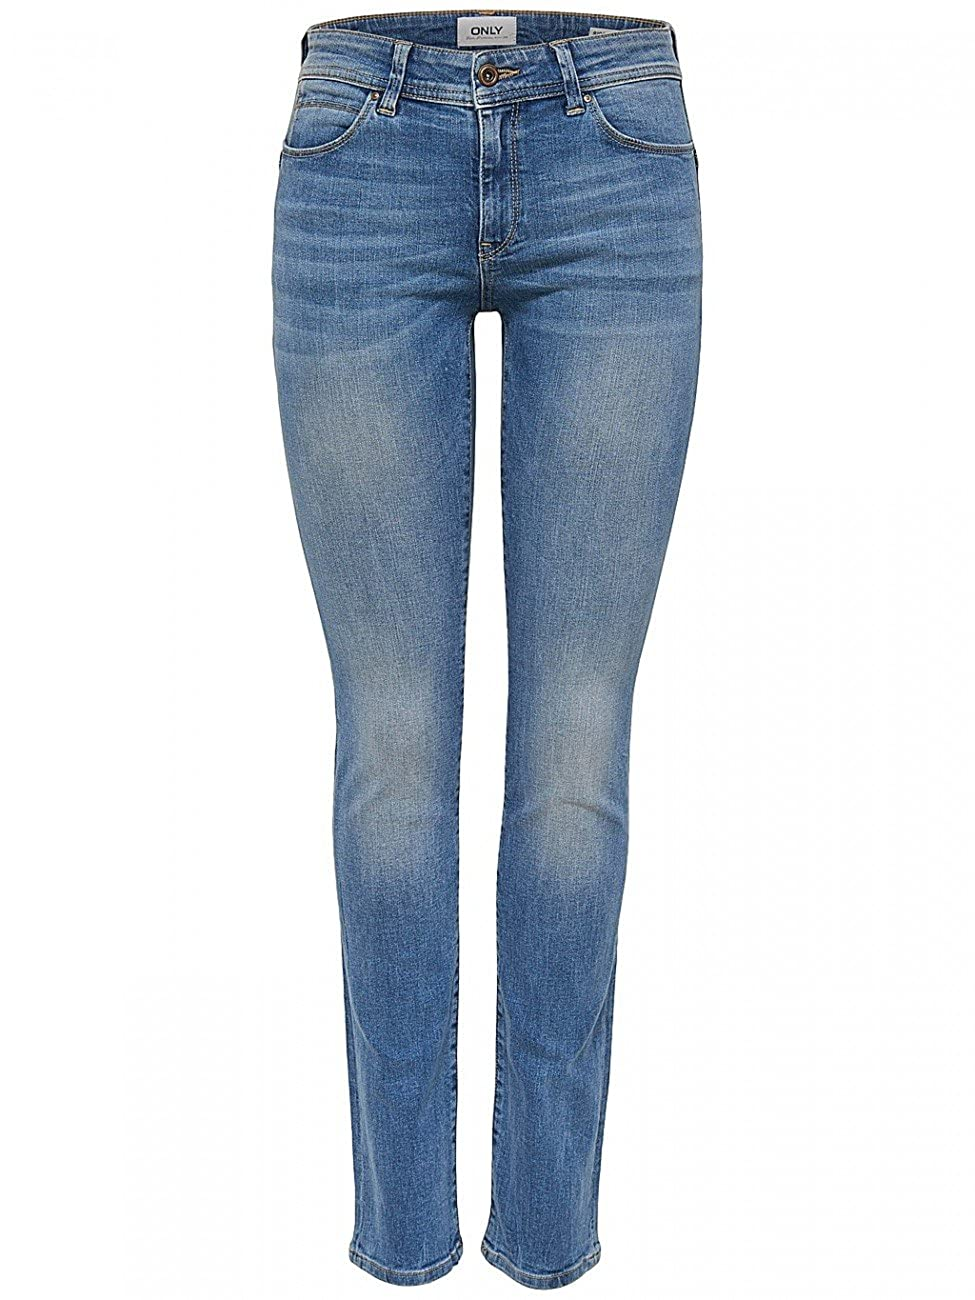 Only, Jeans Slim Donna